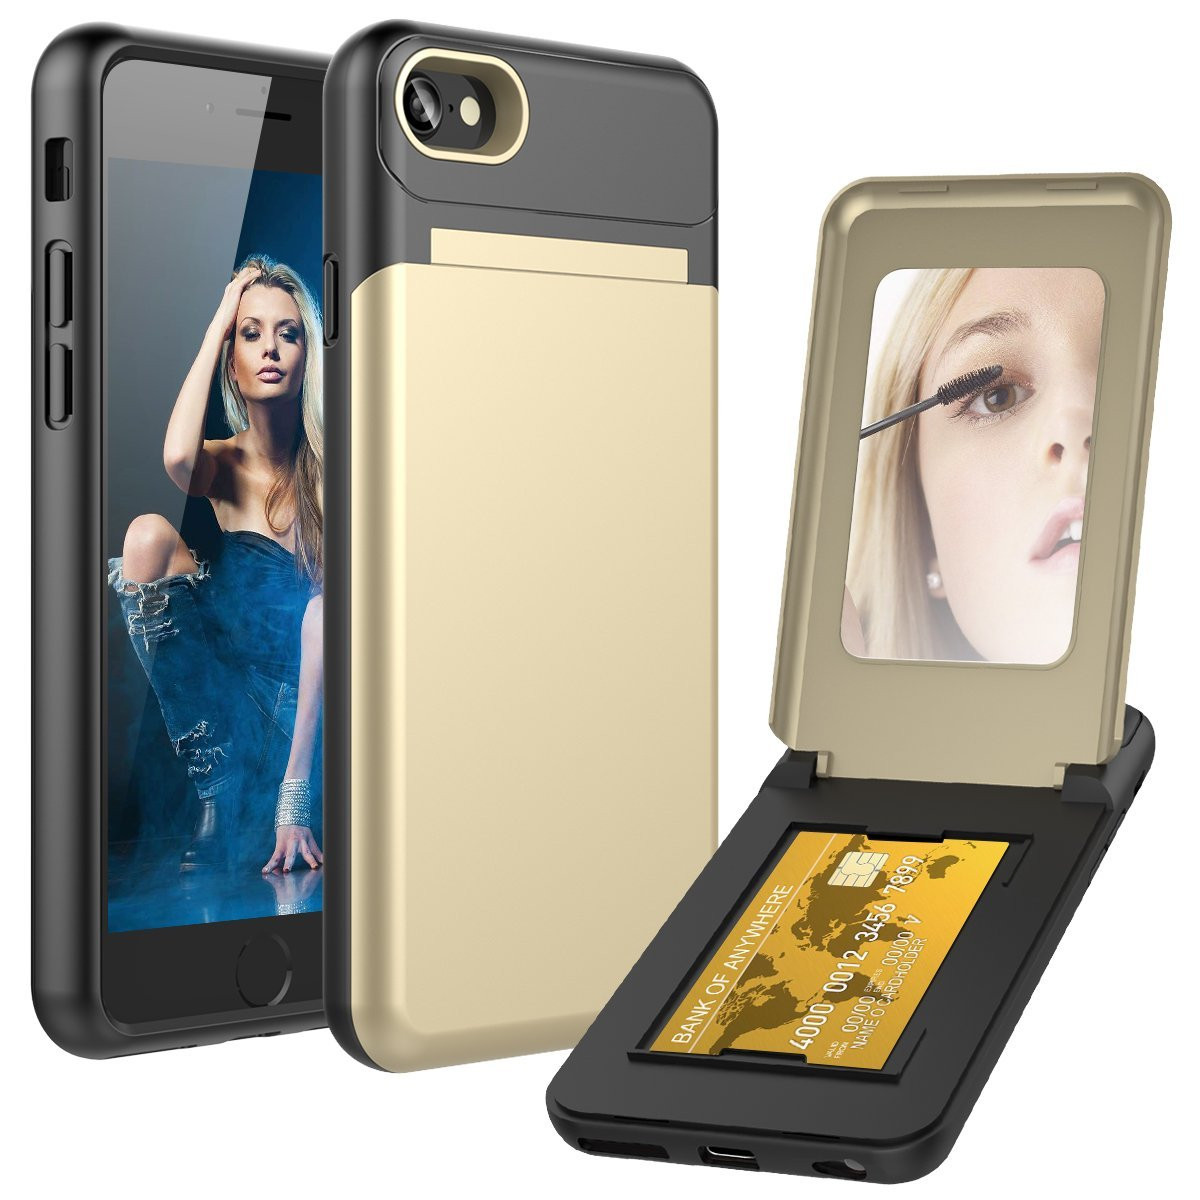 Apple iPhone 6 -  Hard Phone Case with Hidden Mirror and Card Holder Compartment, Gold/Black